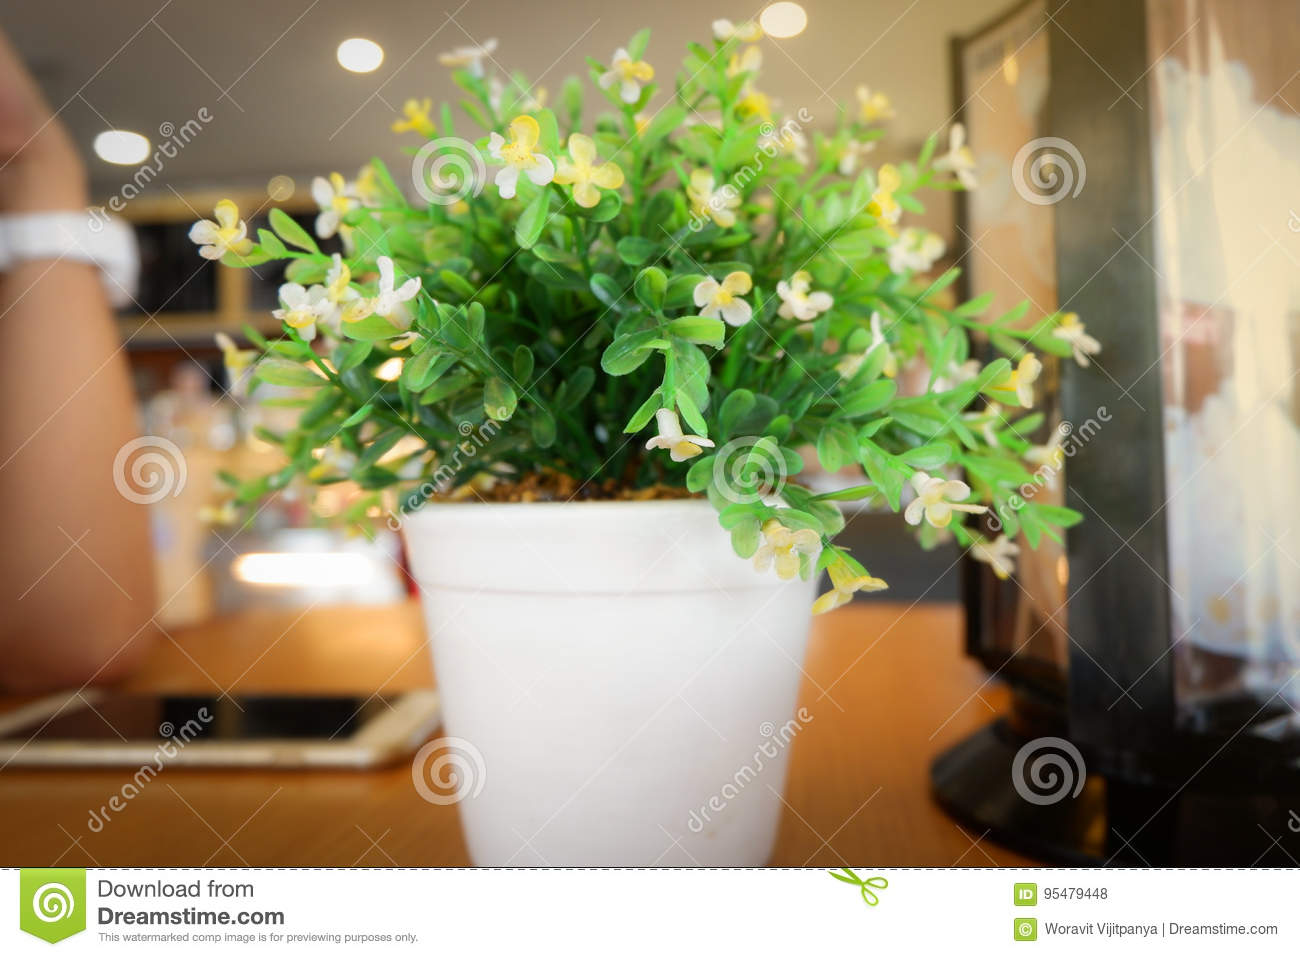 Dreamstime.com & Office Table With Flower Pot. Stock Photo - Image of lights ...